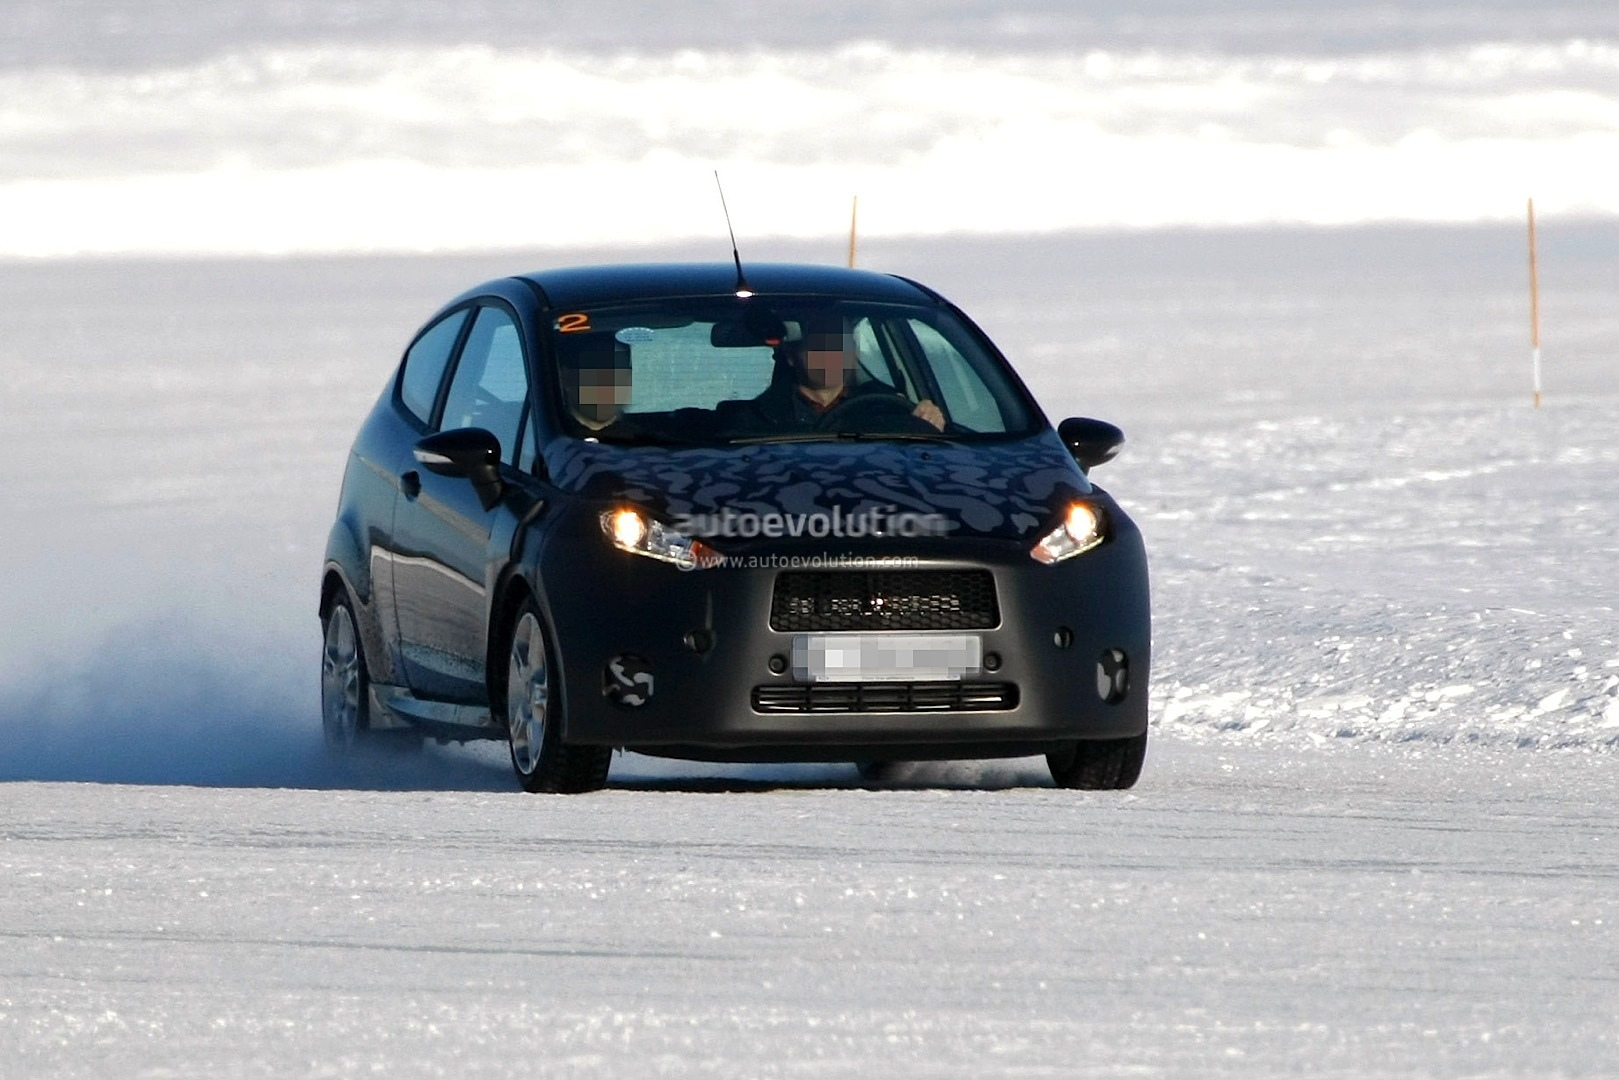 2013 Ford Fiesta Facelift Spyshots - photo gallery